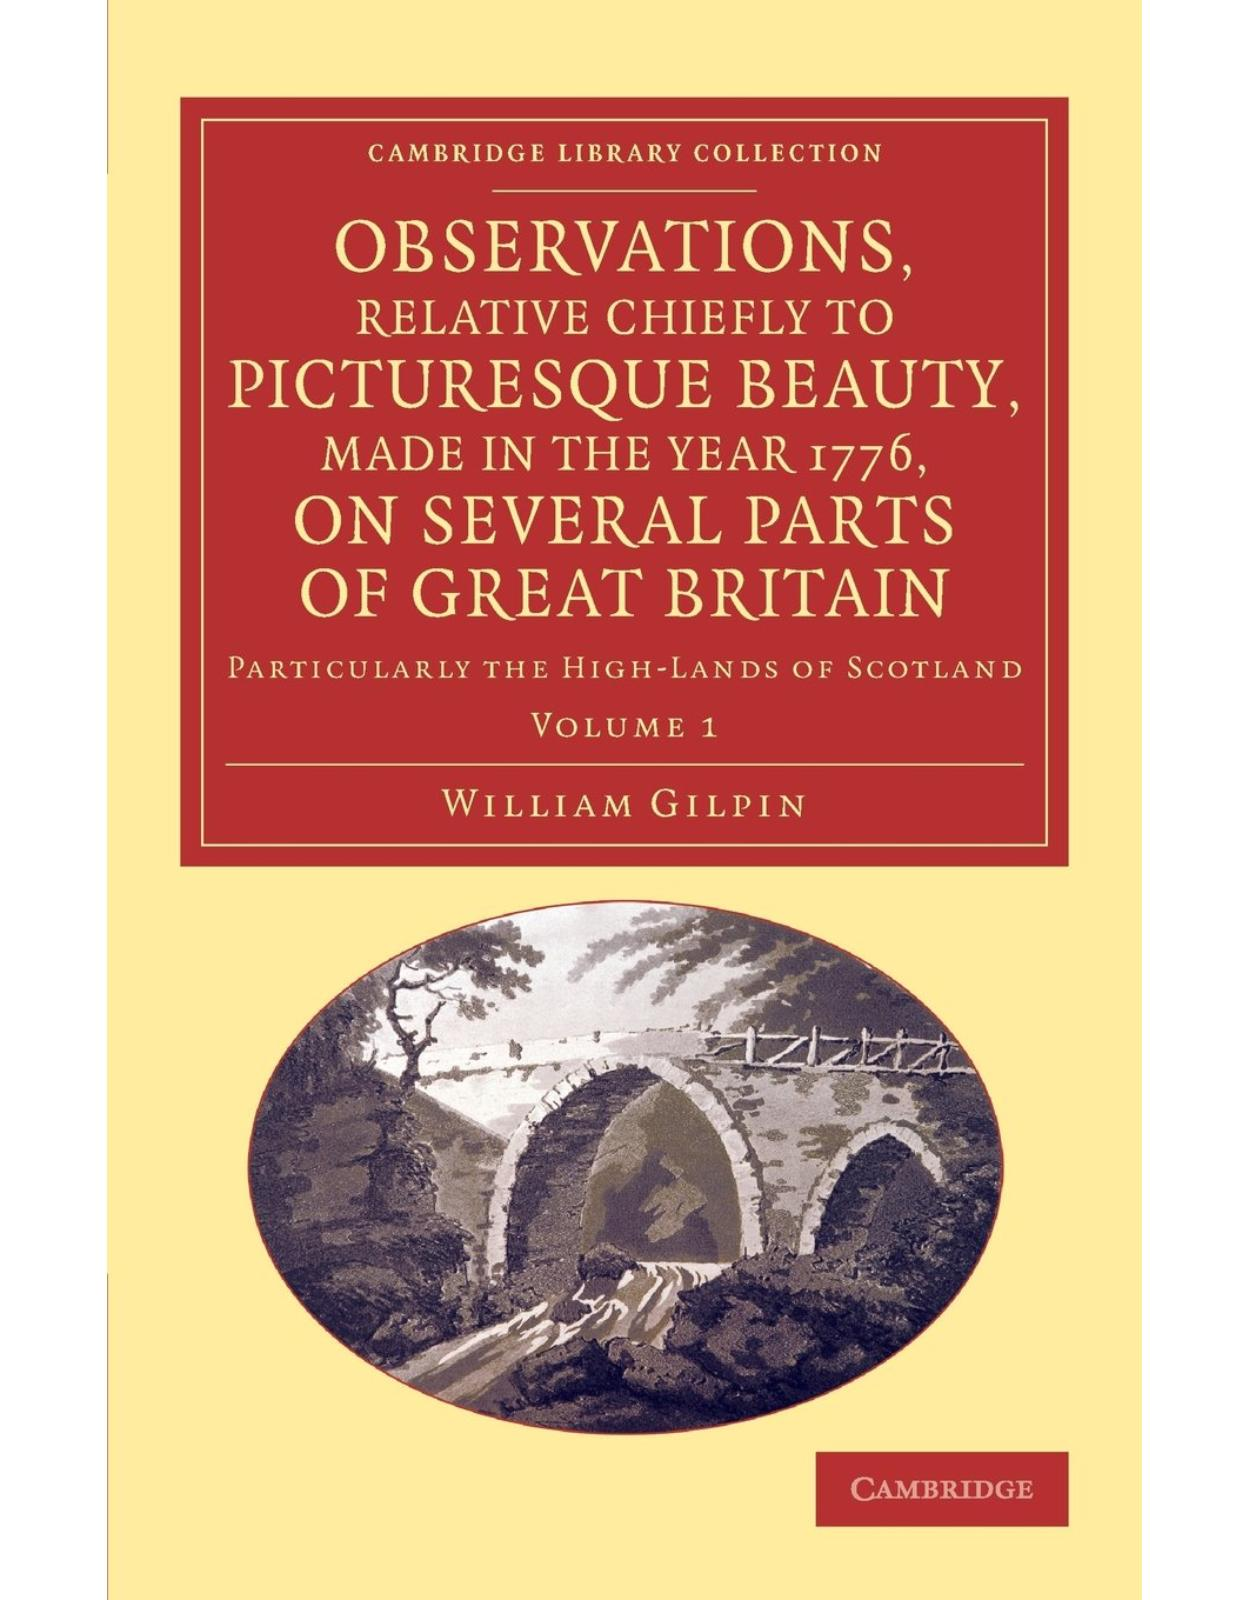 Observations, Relative Chiefly to Picturesque Beauty, Made in the Year 1776, on Several Parts of Great Britain 2 Volume Set: Particularly the High-Lands of Scotland